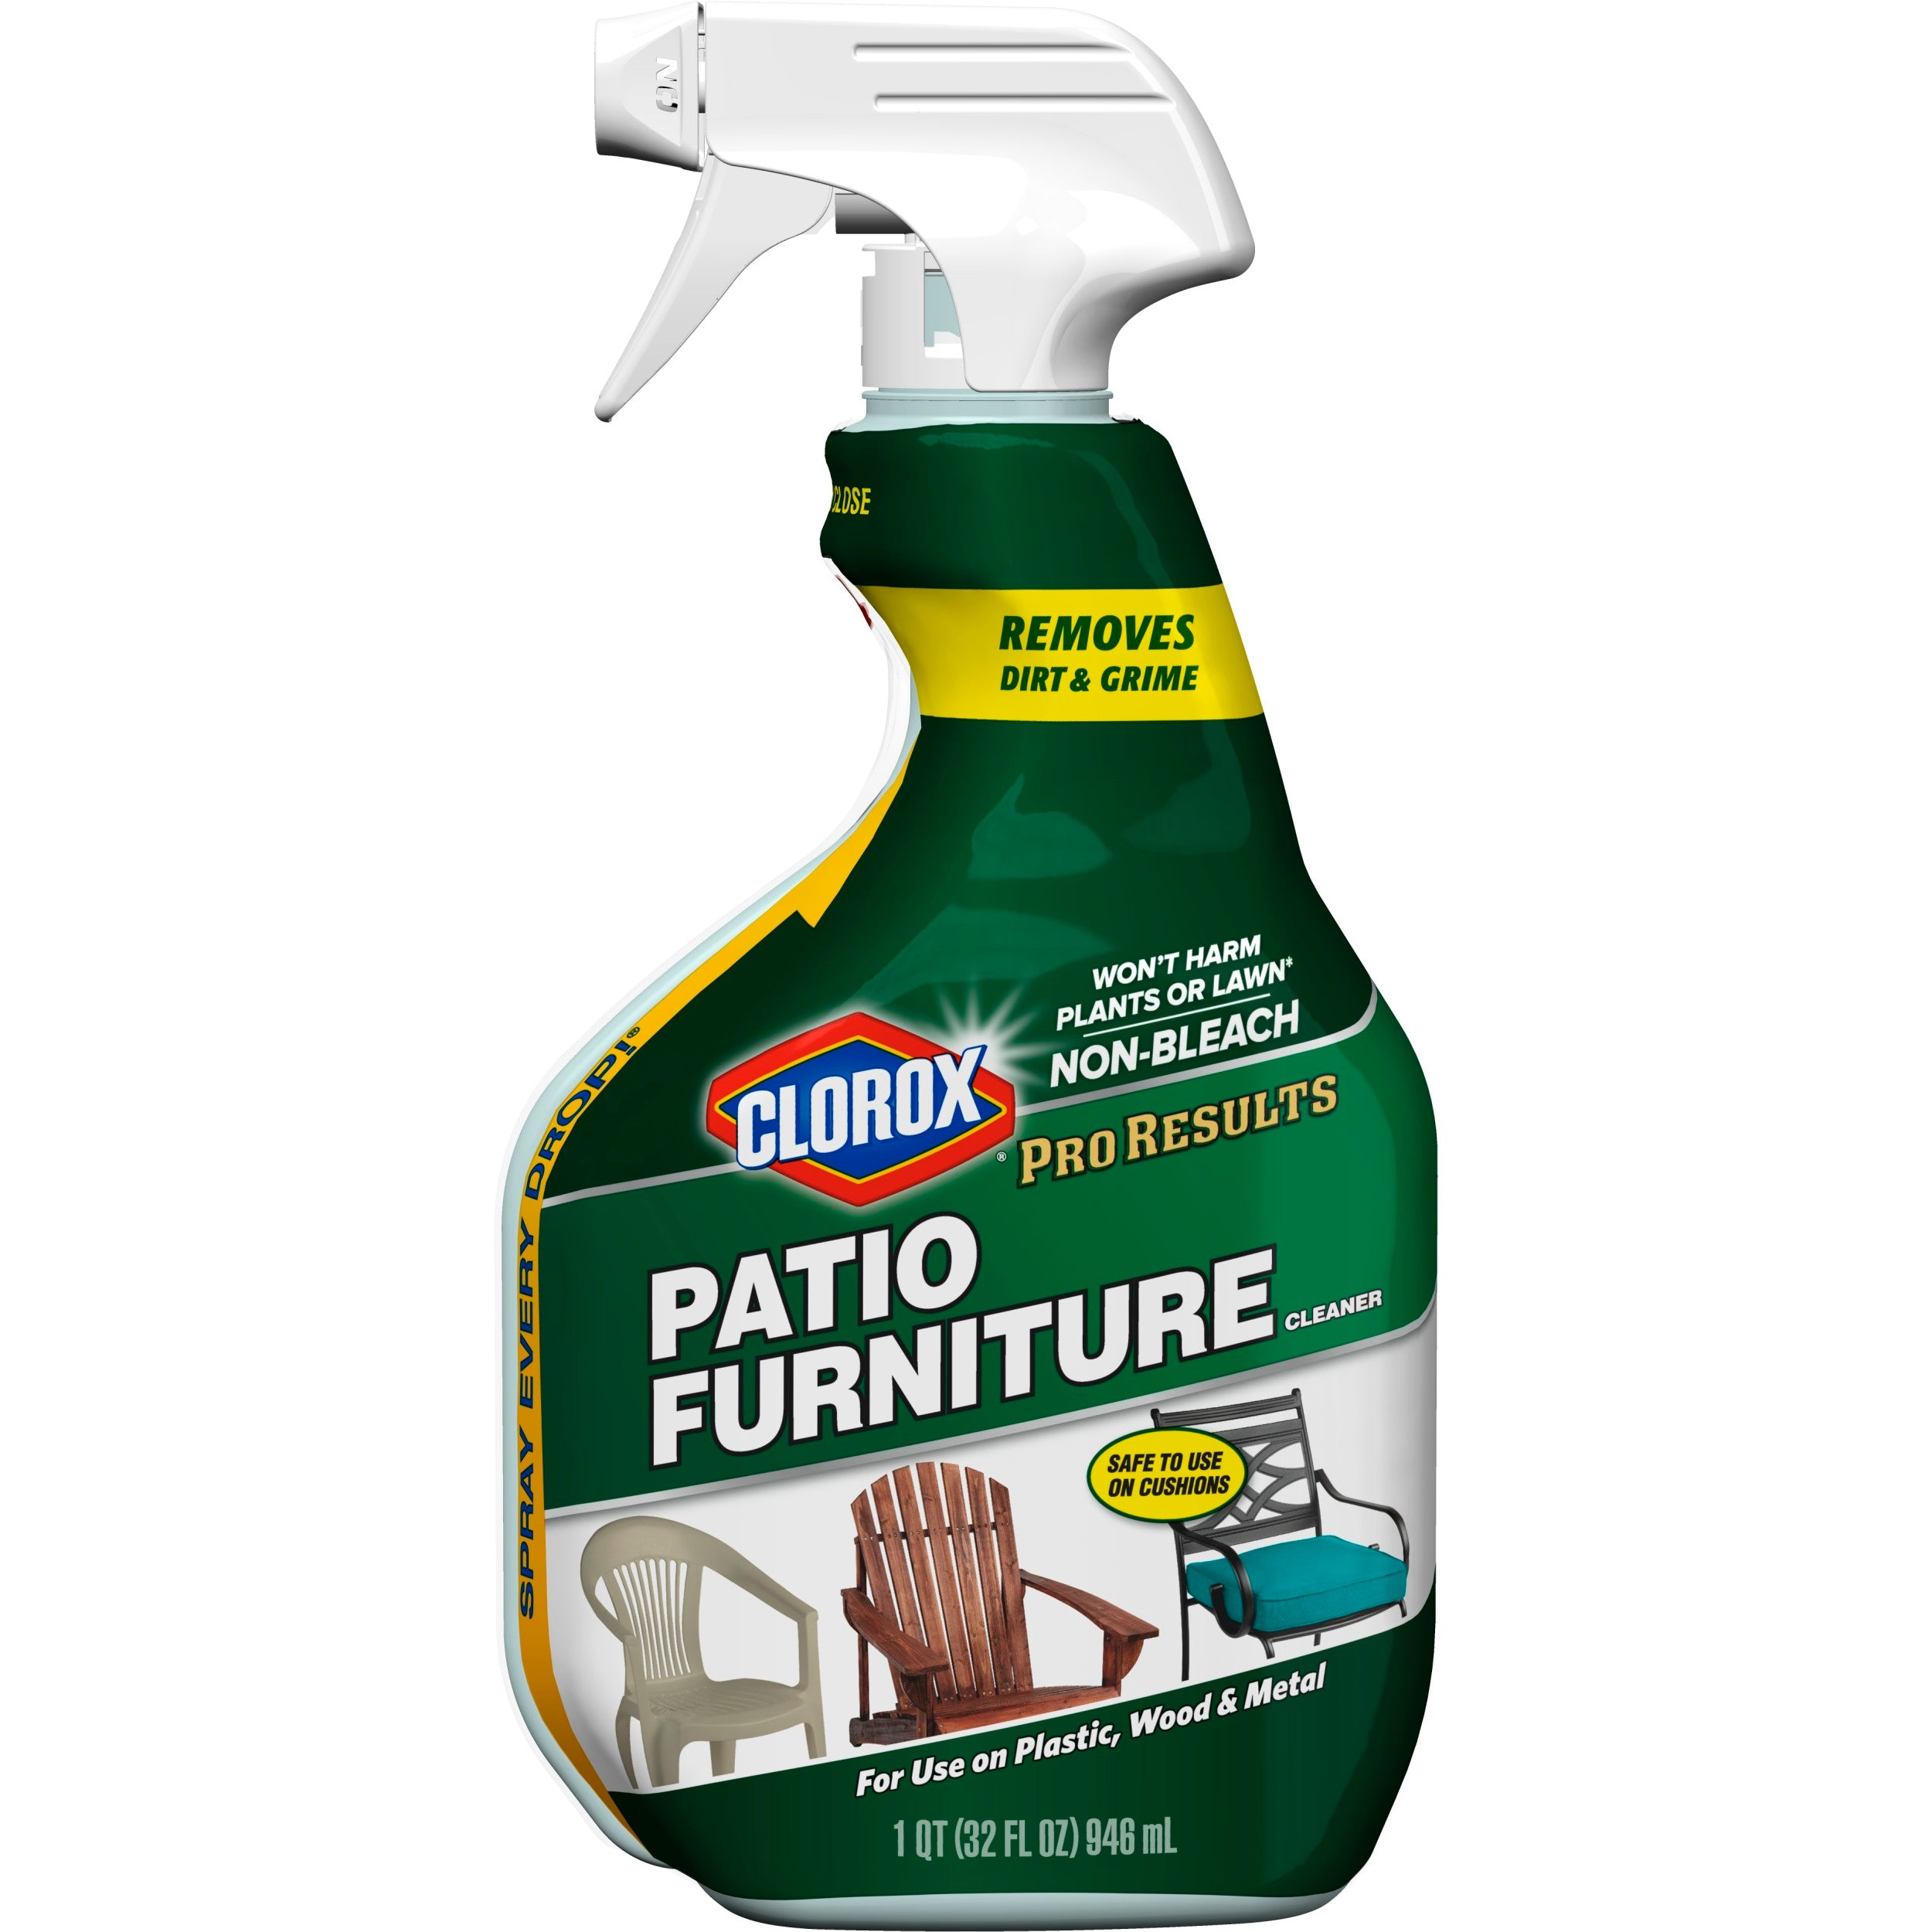 Clorox Pro Results Patio Furniture Cleaner, 32 oz - FLJ CORPORATIONS